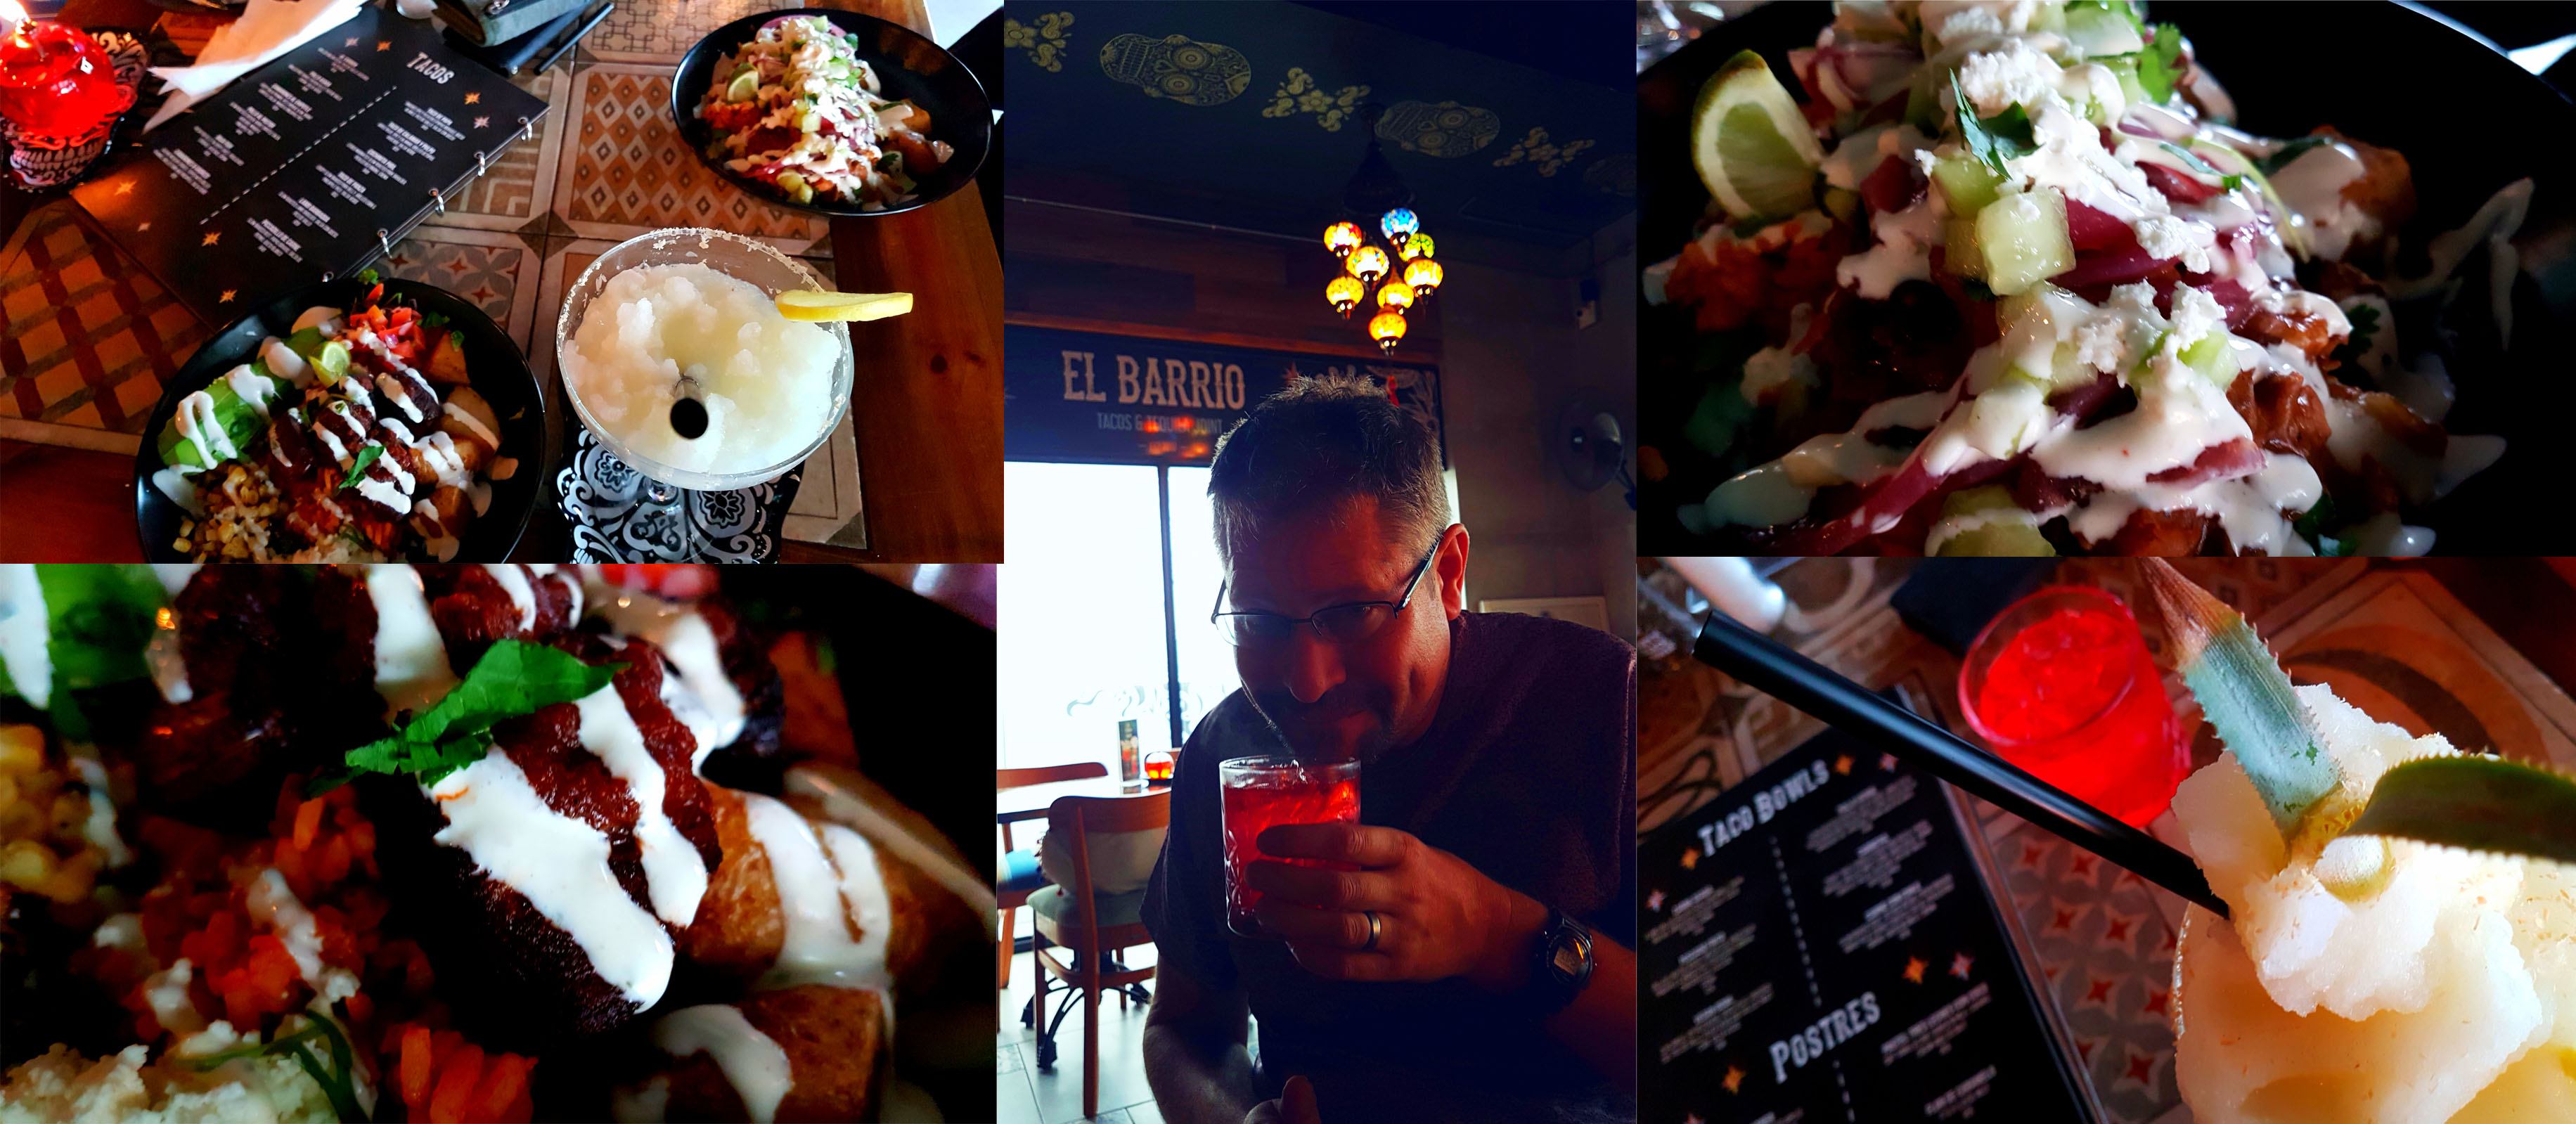 We'd not been to El Barrio in Eden on the Bay for a long time, so that's where we had our Saturday lupper. See my pina-pina frozen margarita and his 'little mamasita', as well as my carnita (pork) and his 'carne con chile' taco bowl.